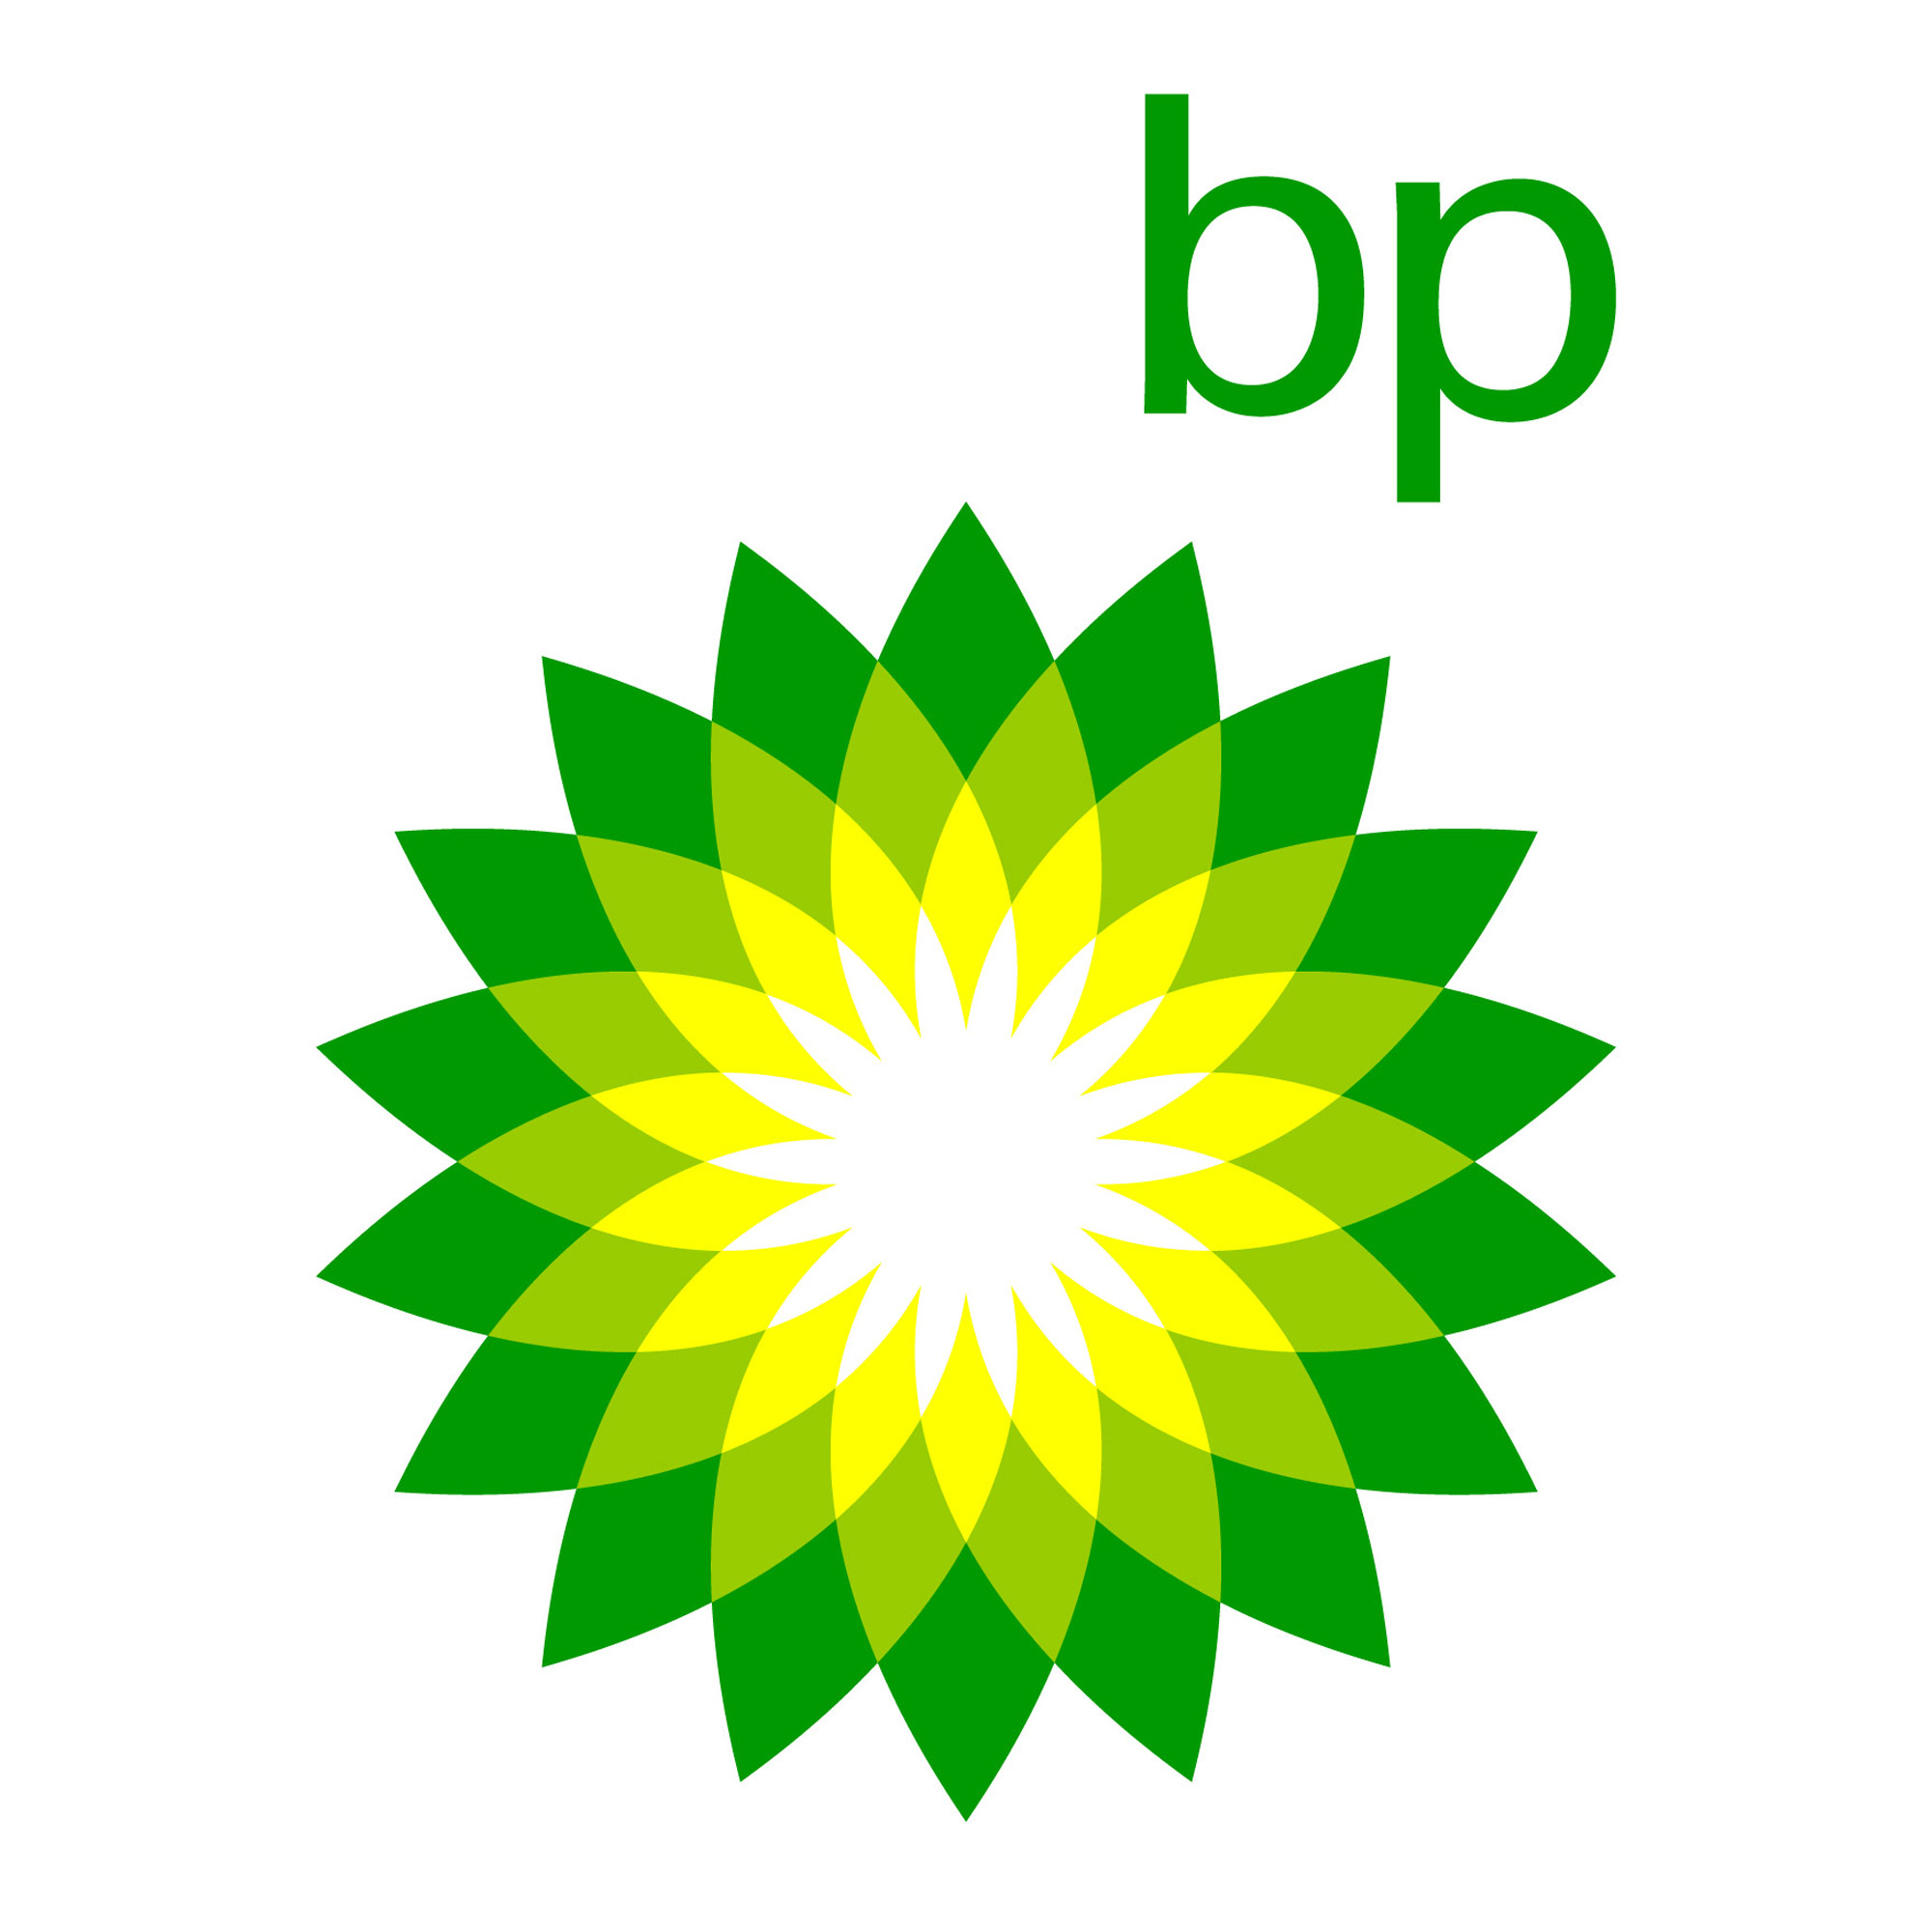 1bp logo copy 2